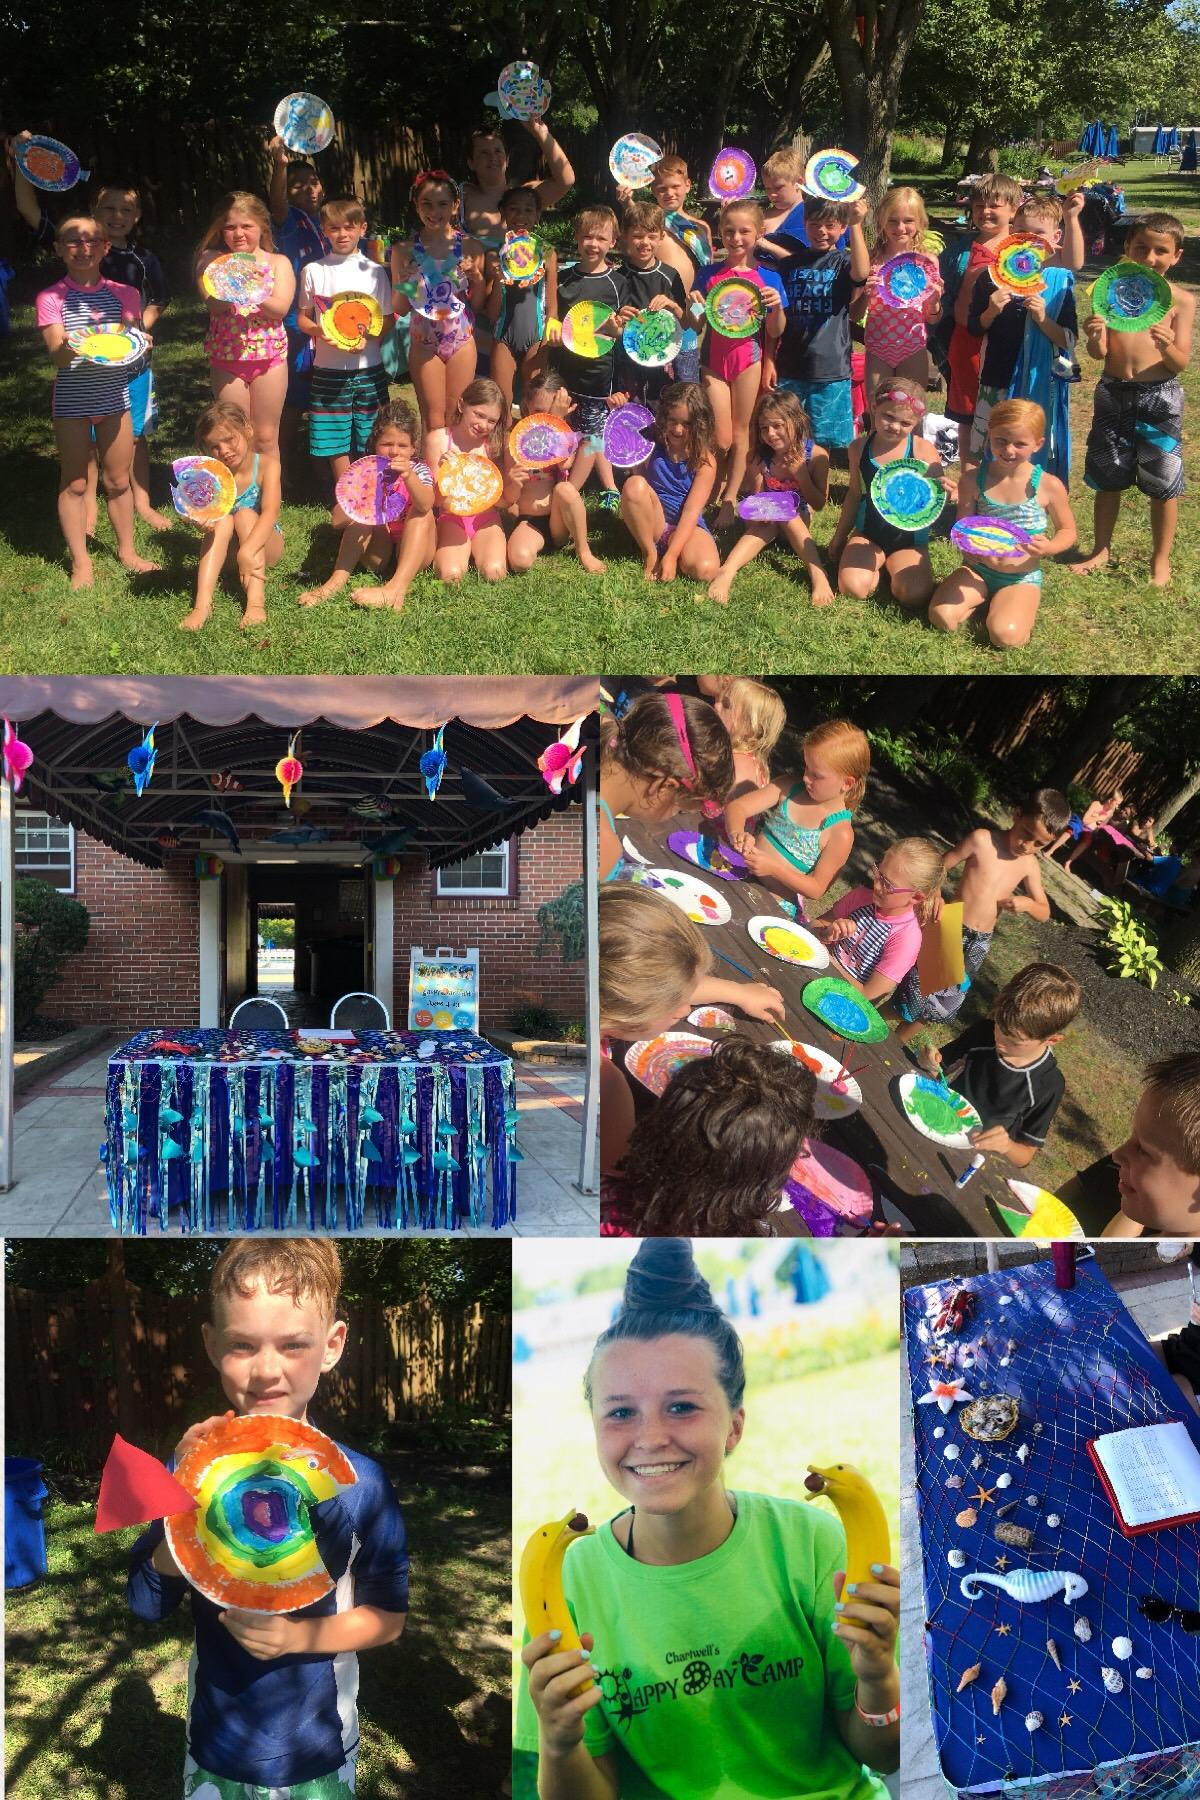 Chartwell's Happy Day Camp Marlton image 47